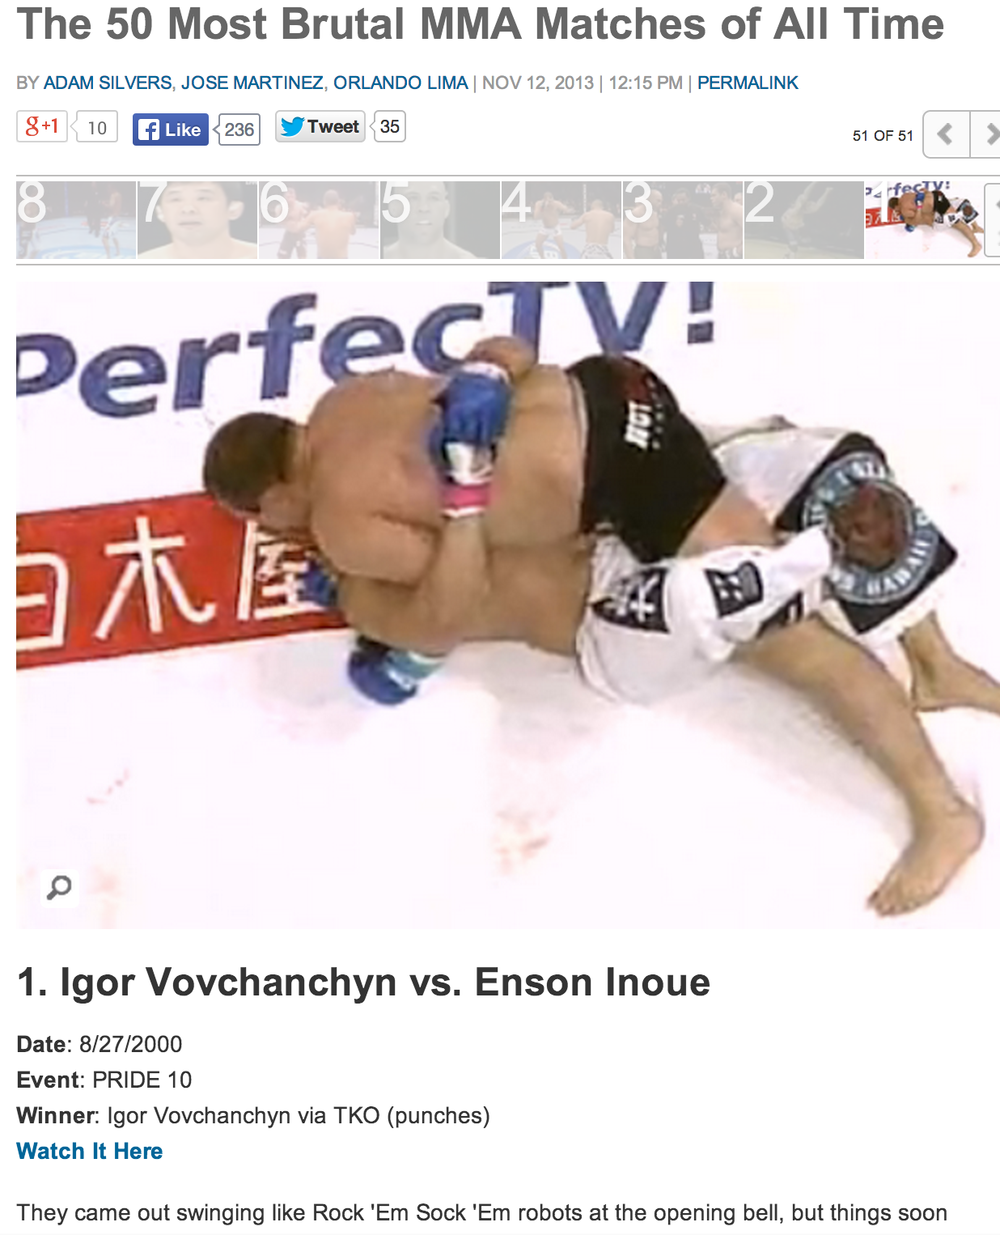 The 50 most Brutal MMA Matches of All Time By Complex Sports November 12, 2013